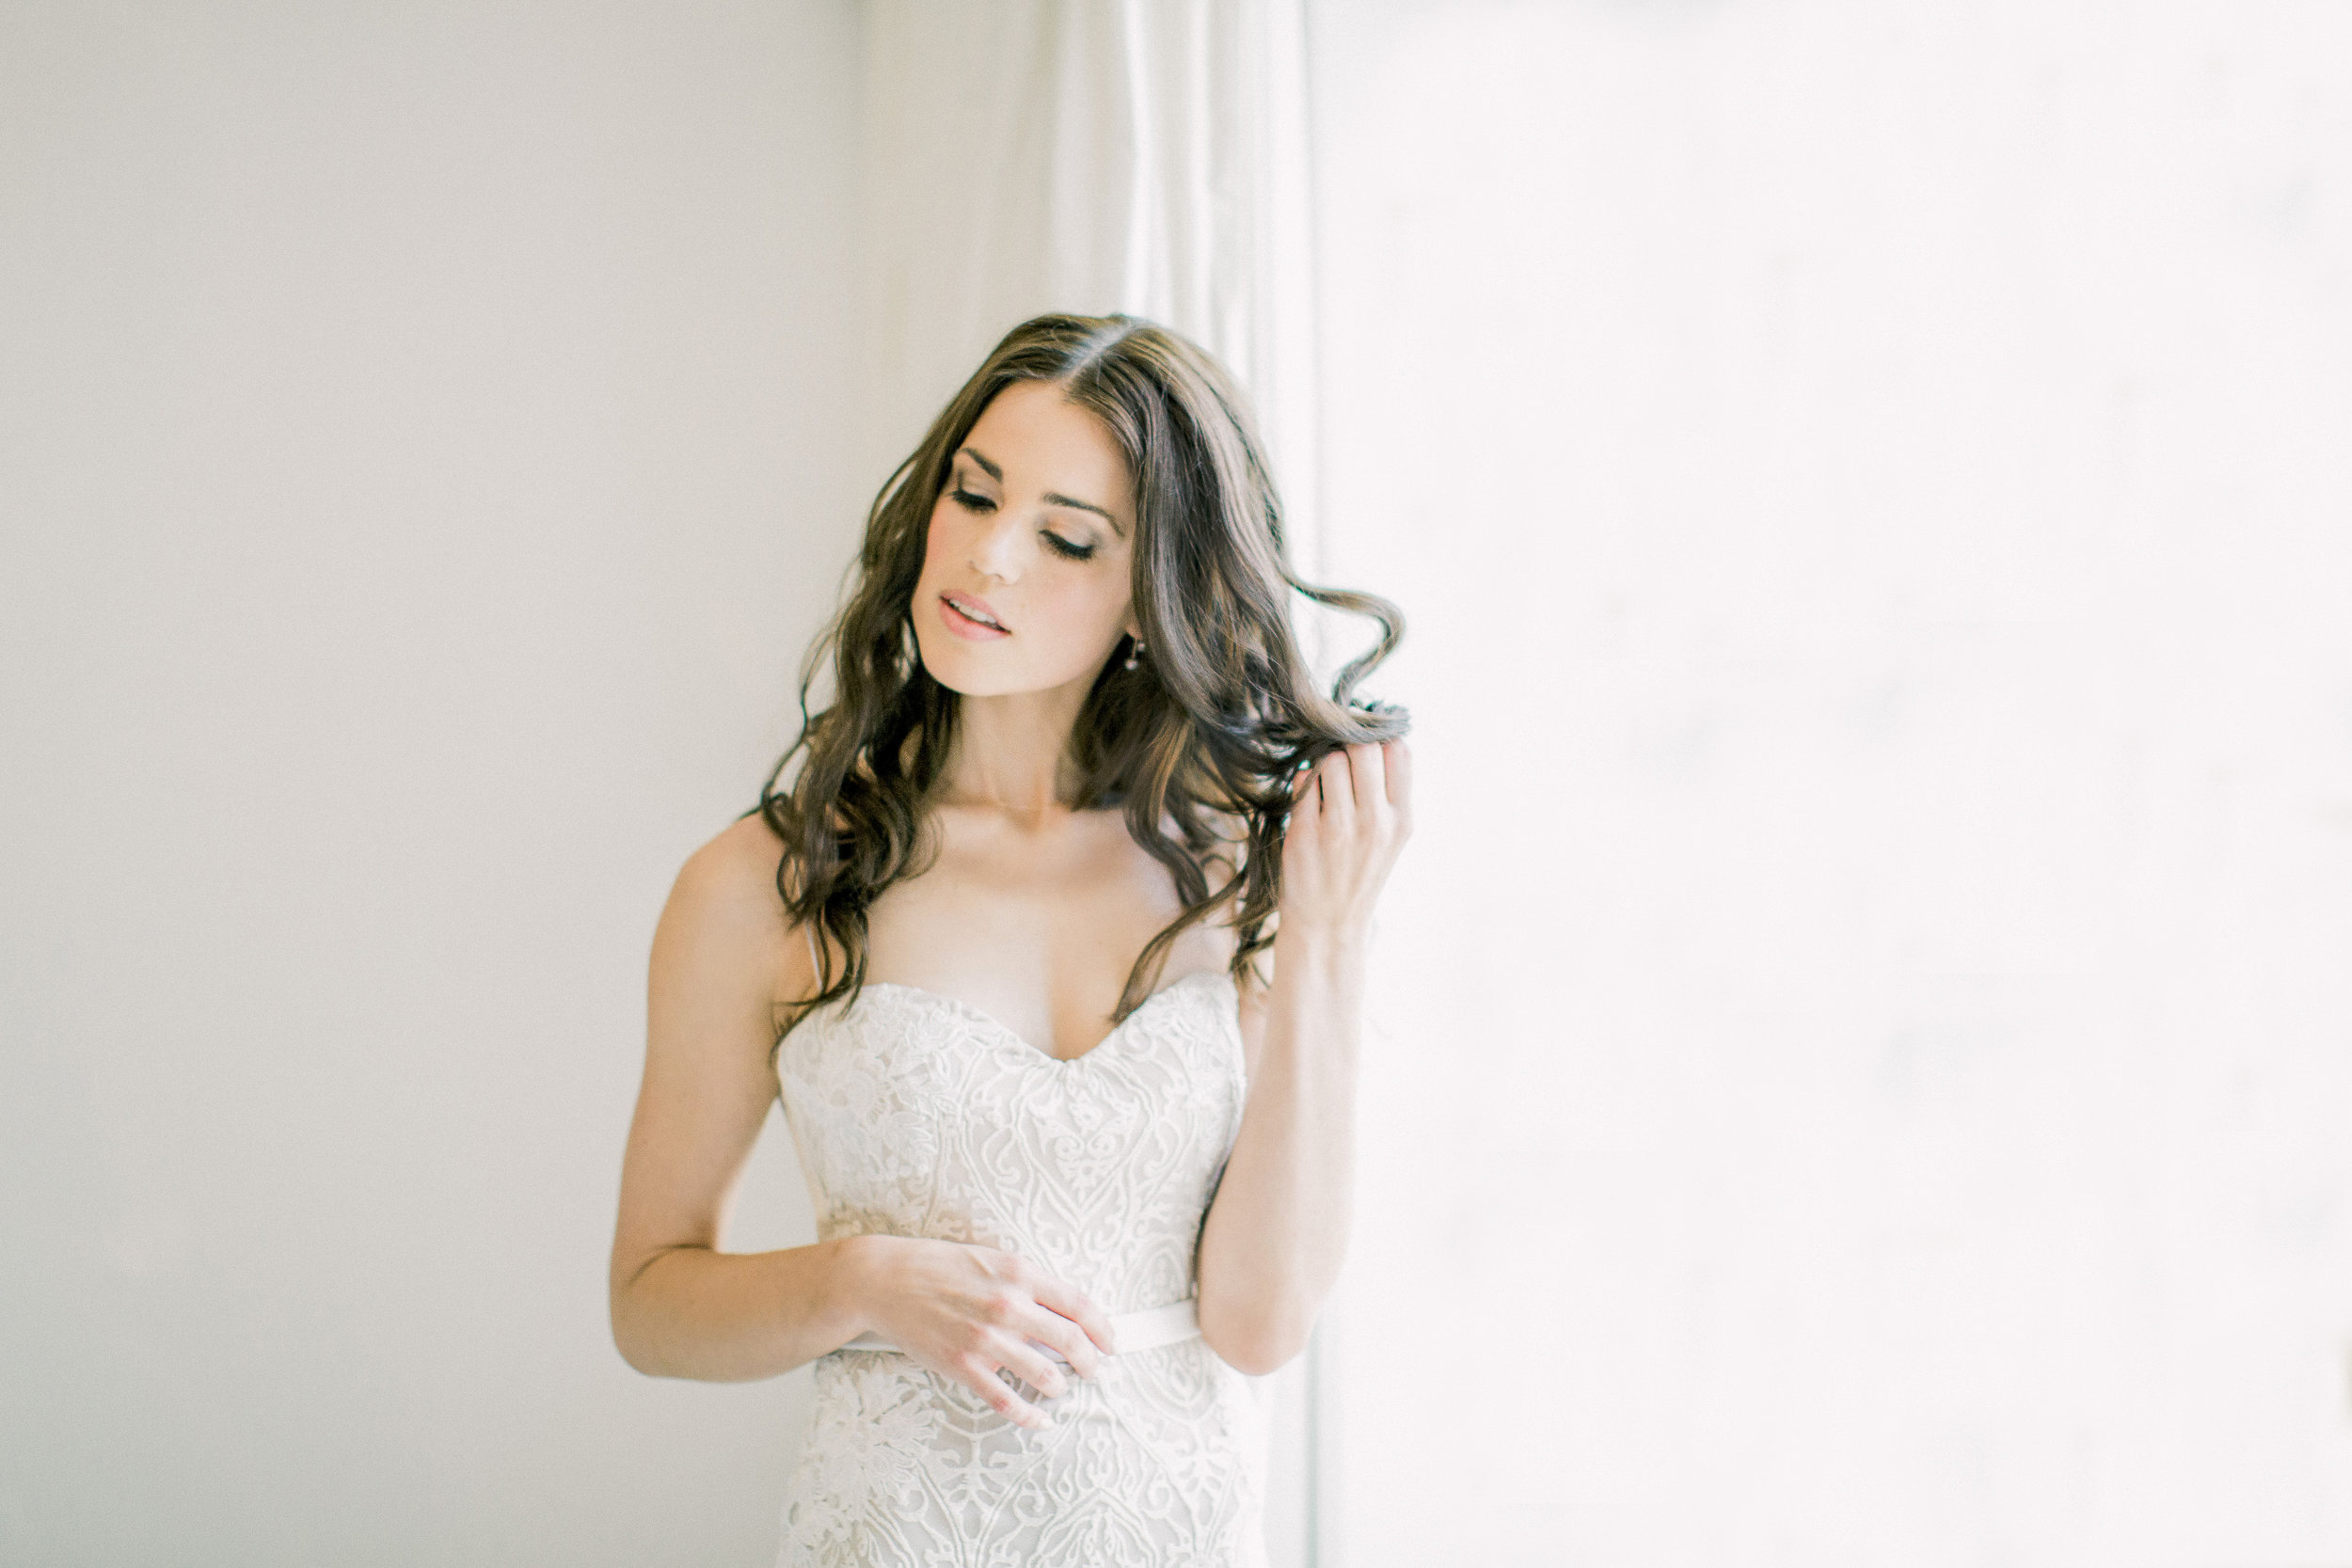 gauteng wedding photographer clareece smit028.jpg